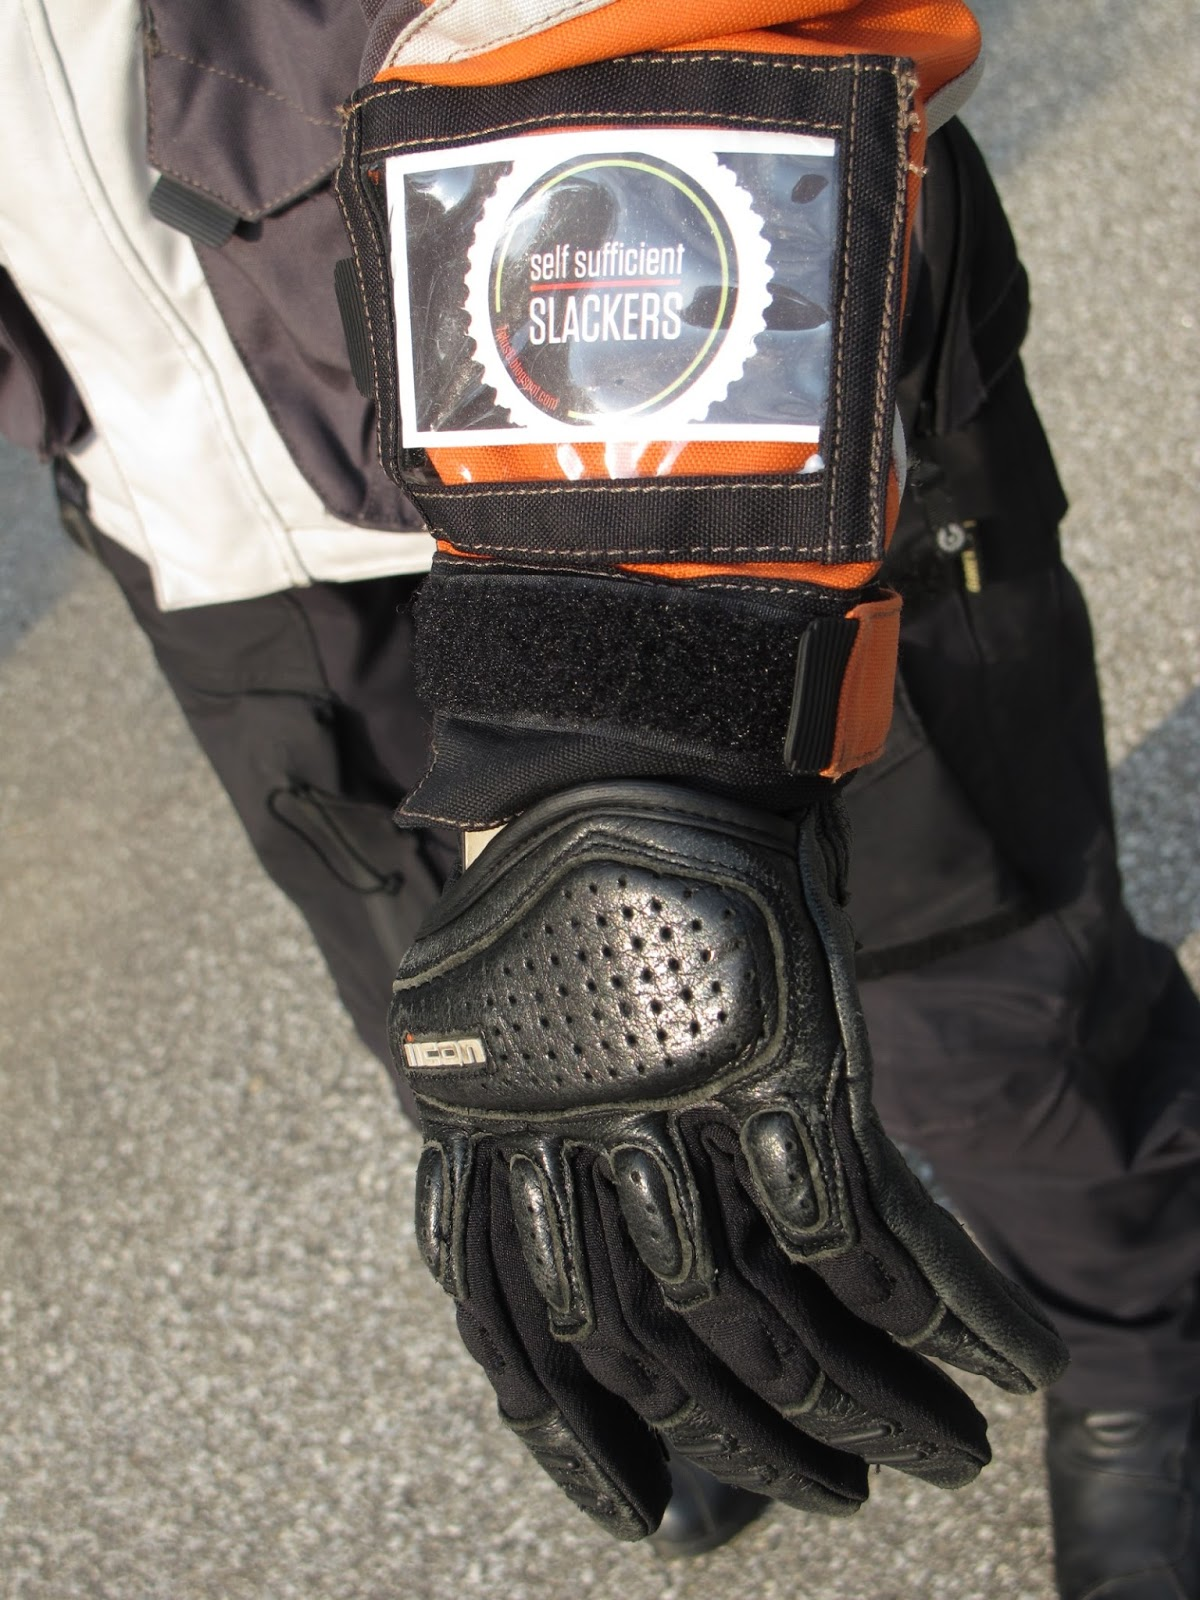 Motorcycle gloves with id pocket - Id Or Badge Pocket On The Left Forearm